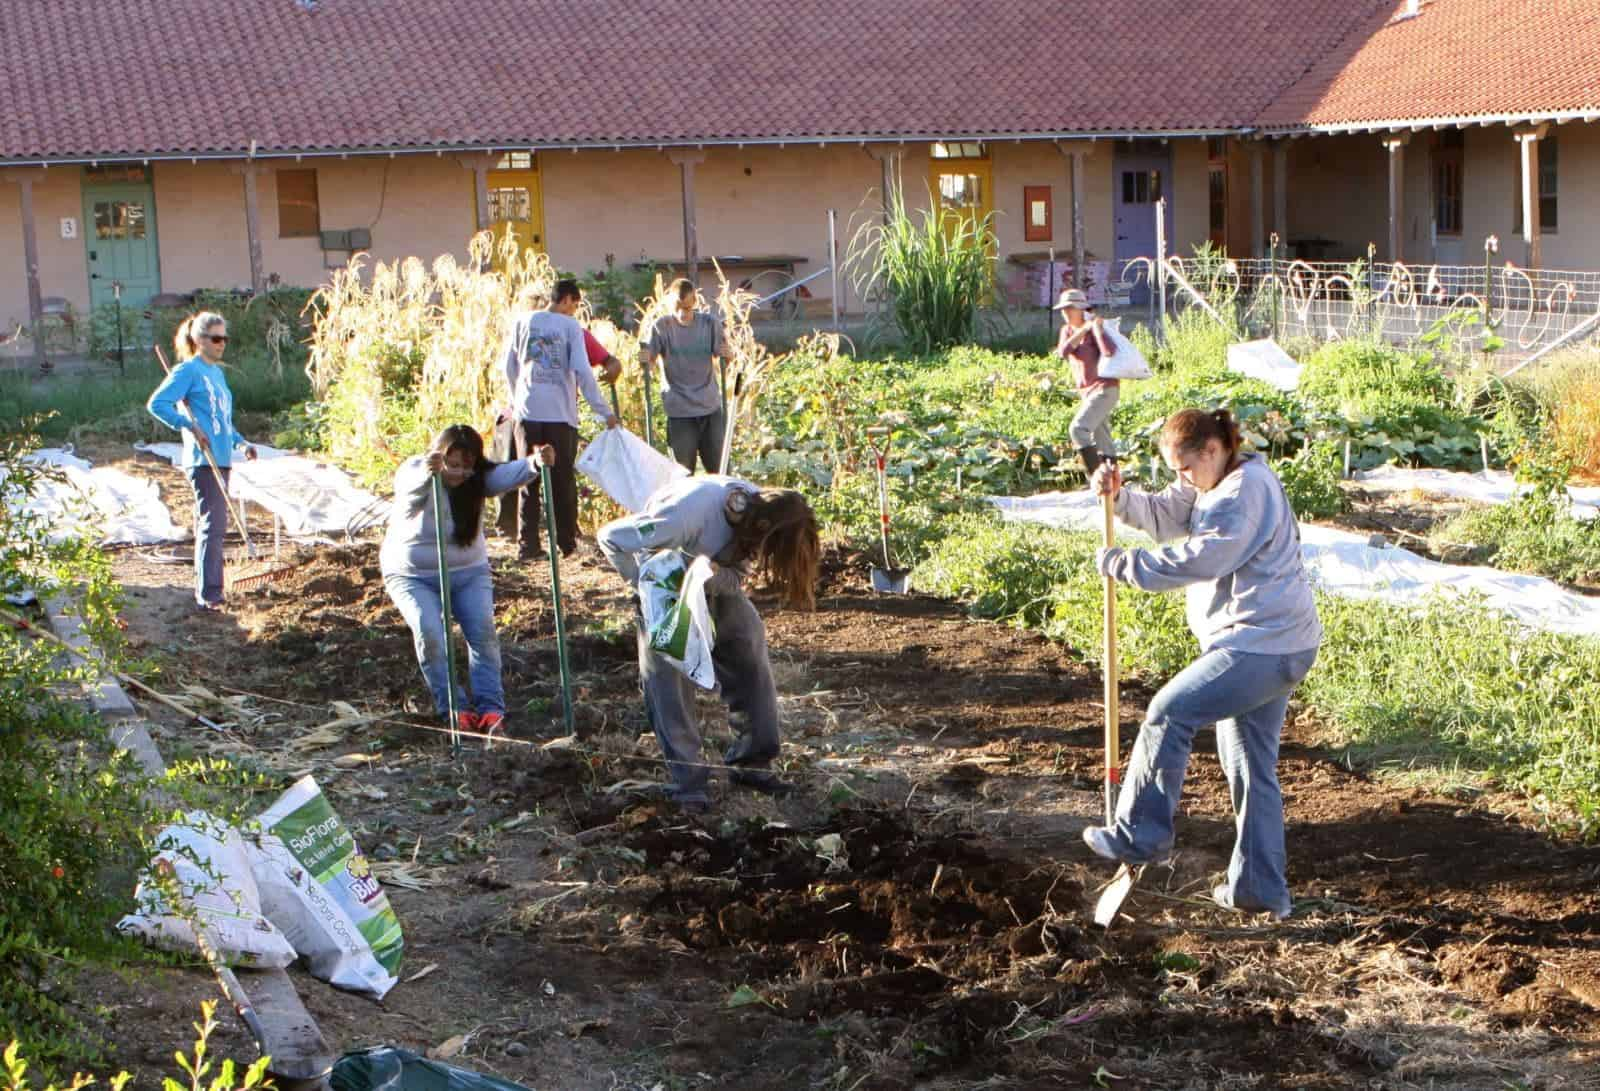 """Participants of the """"Get Going, Get Growing"""" gardening internship in Ajo, Arizona, work up dirt for a garden."""